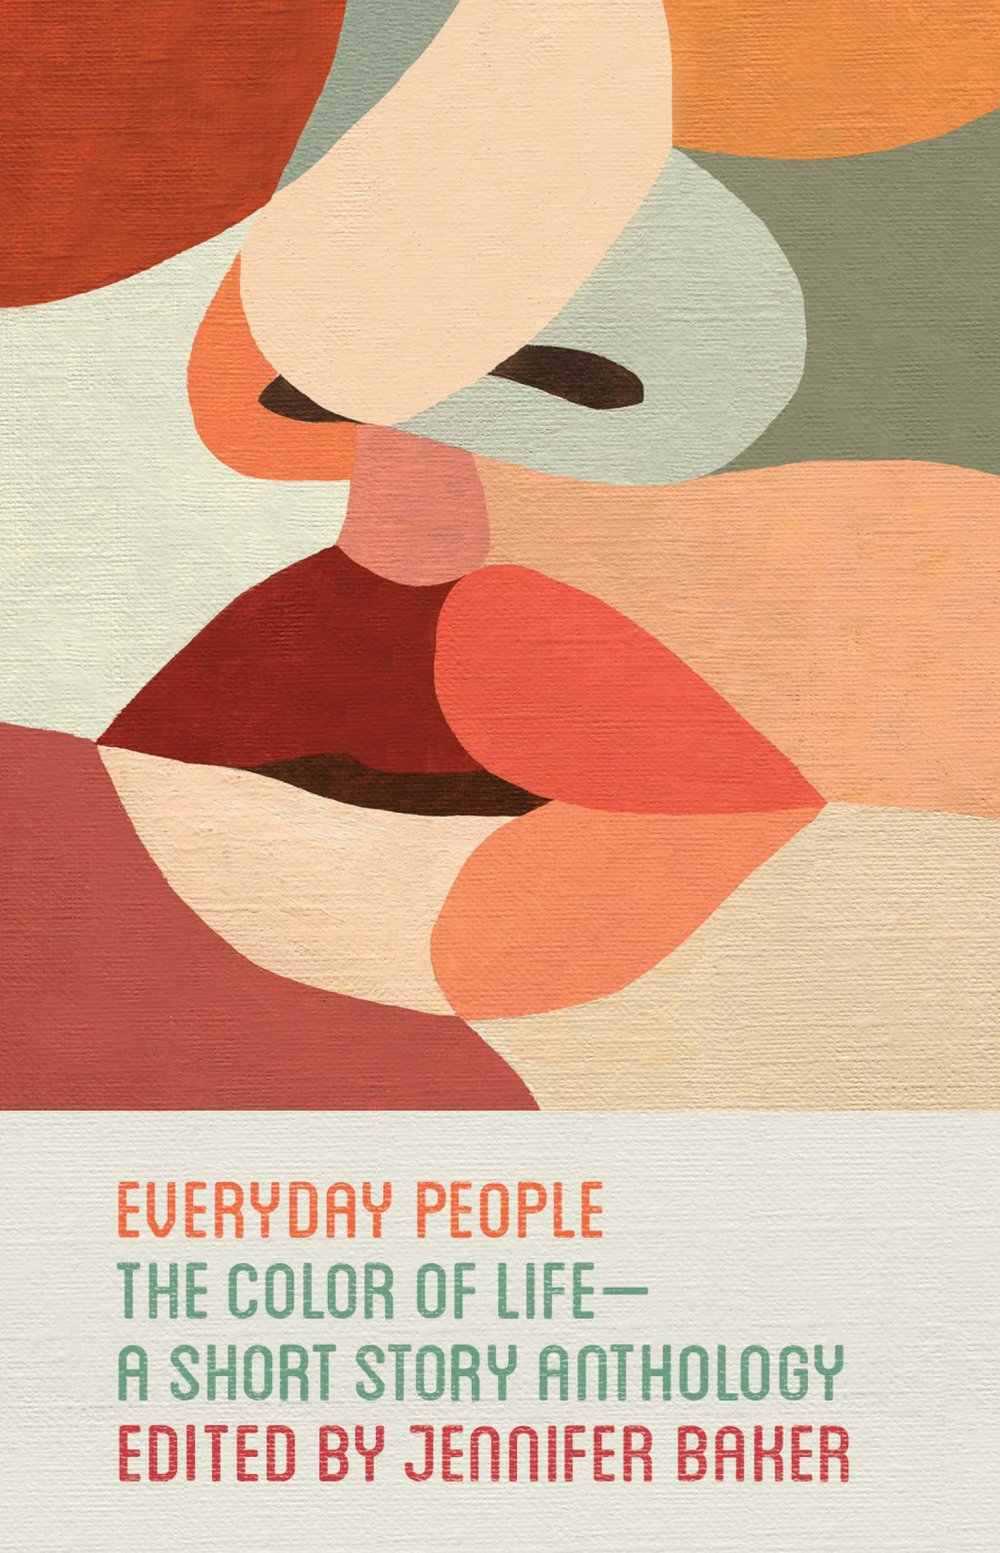 Everyday People: The Color of Life — A Short Story Anthology  (August 28, 2018, Atria Books)